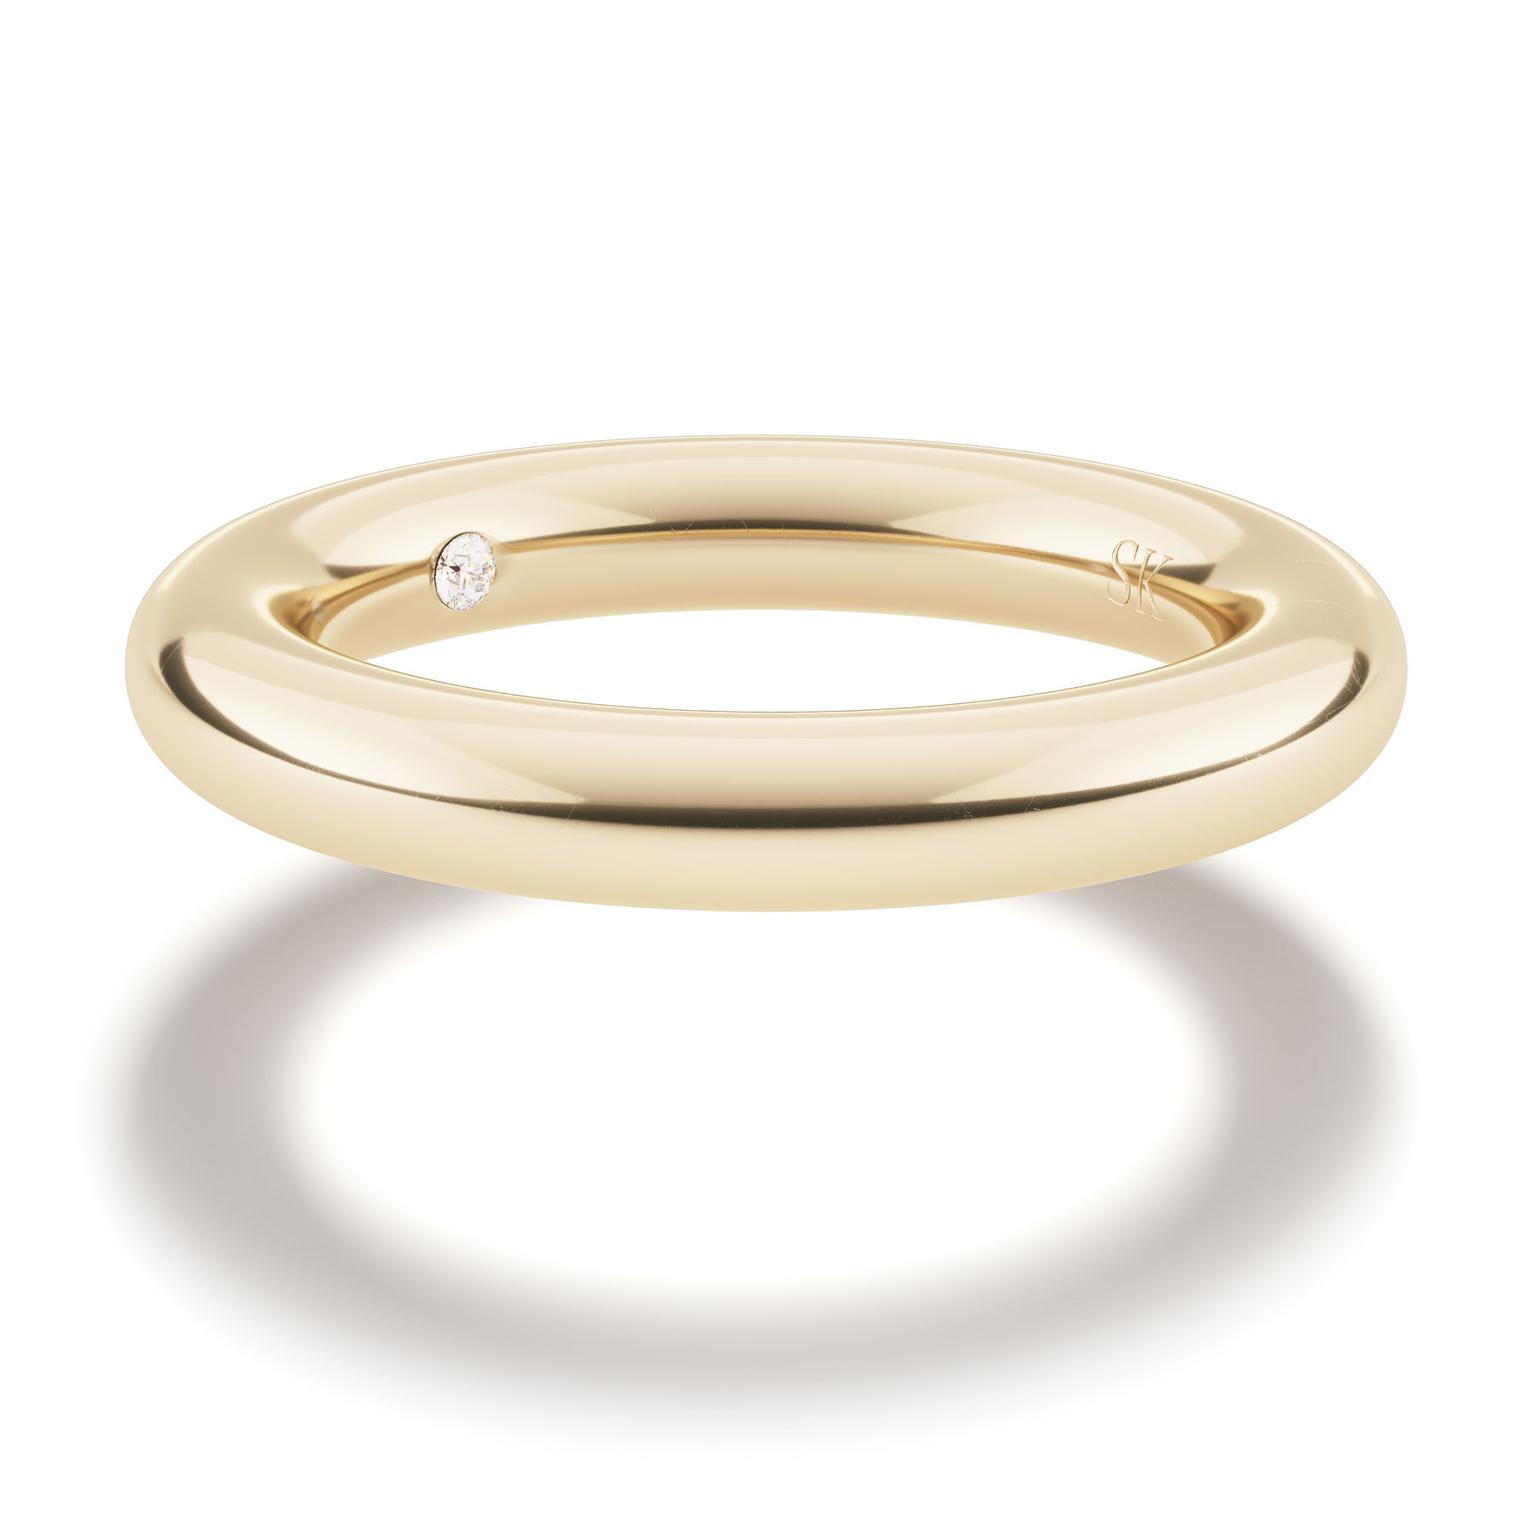 Spinelli Kilcollin Orpheus wedding band